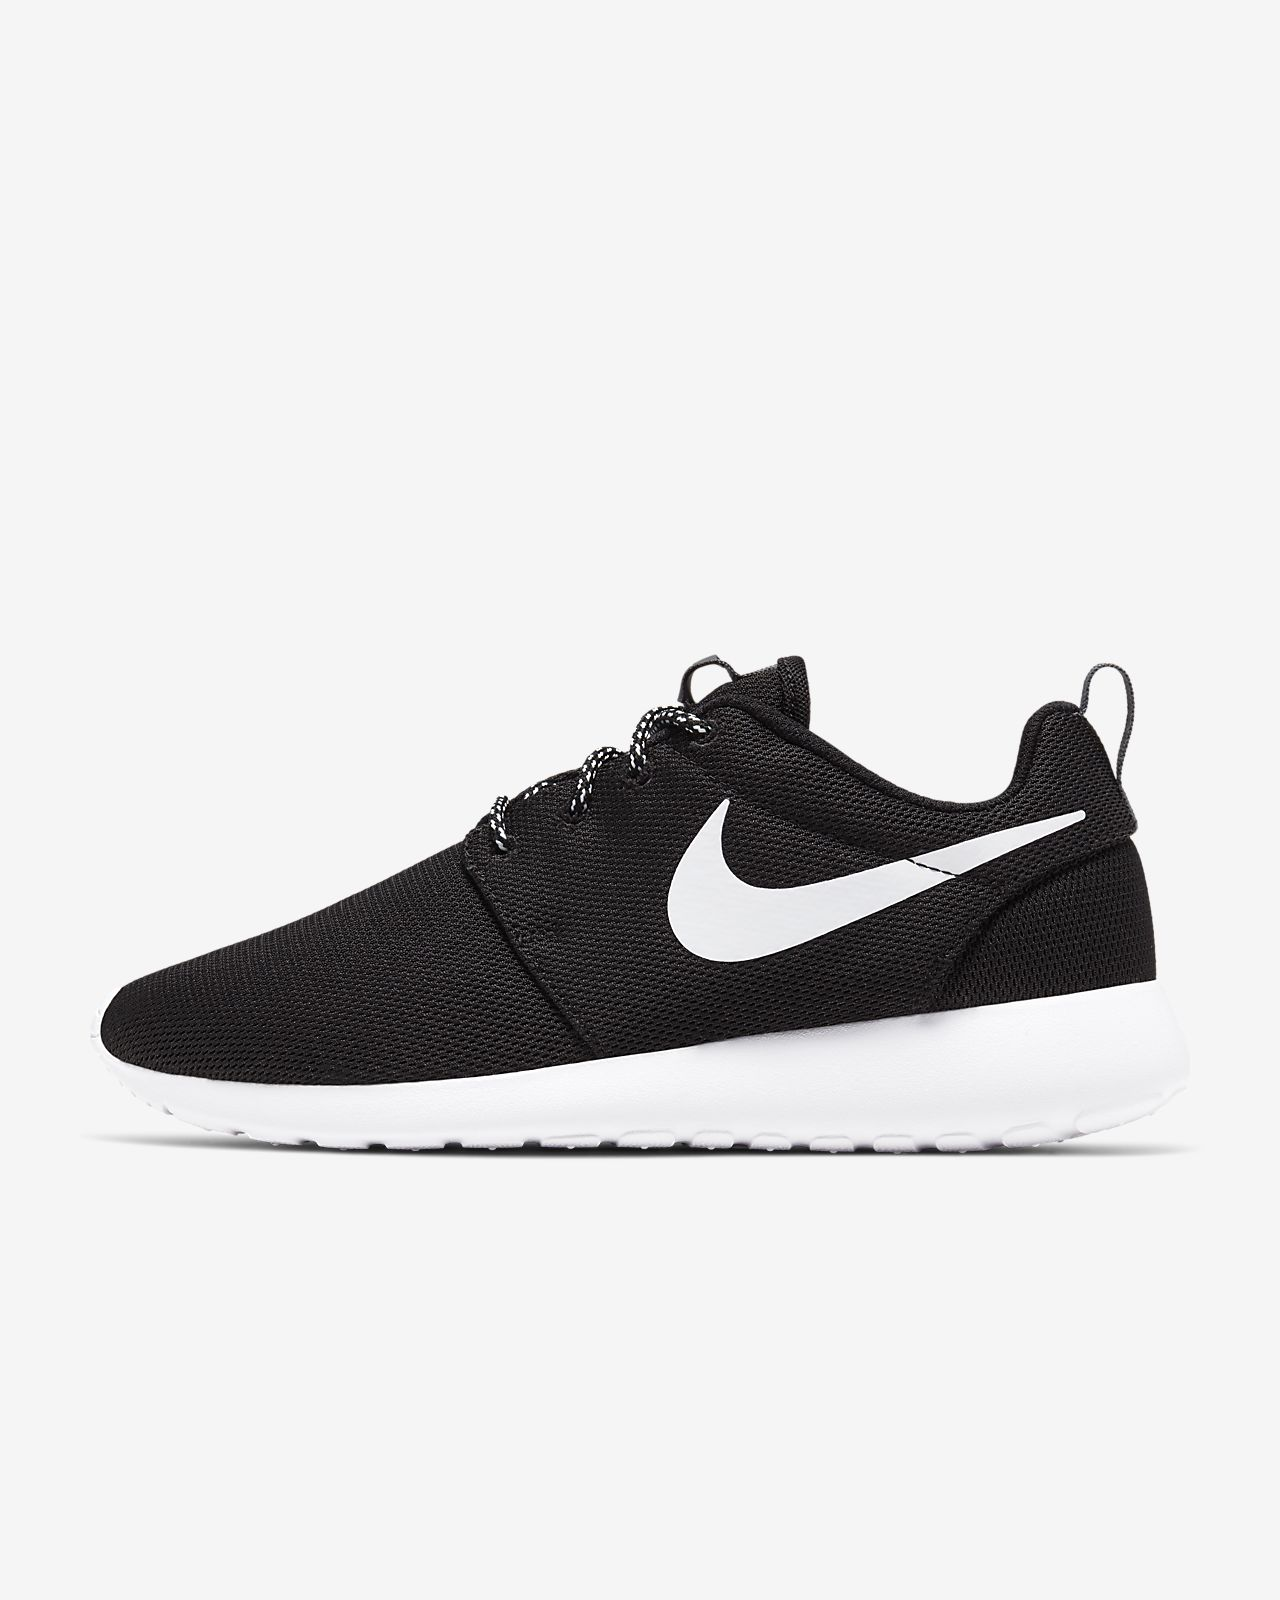 premium selection 24bd3 5f493 ... Nike Roshe One Women s Shoe